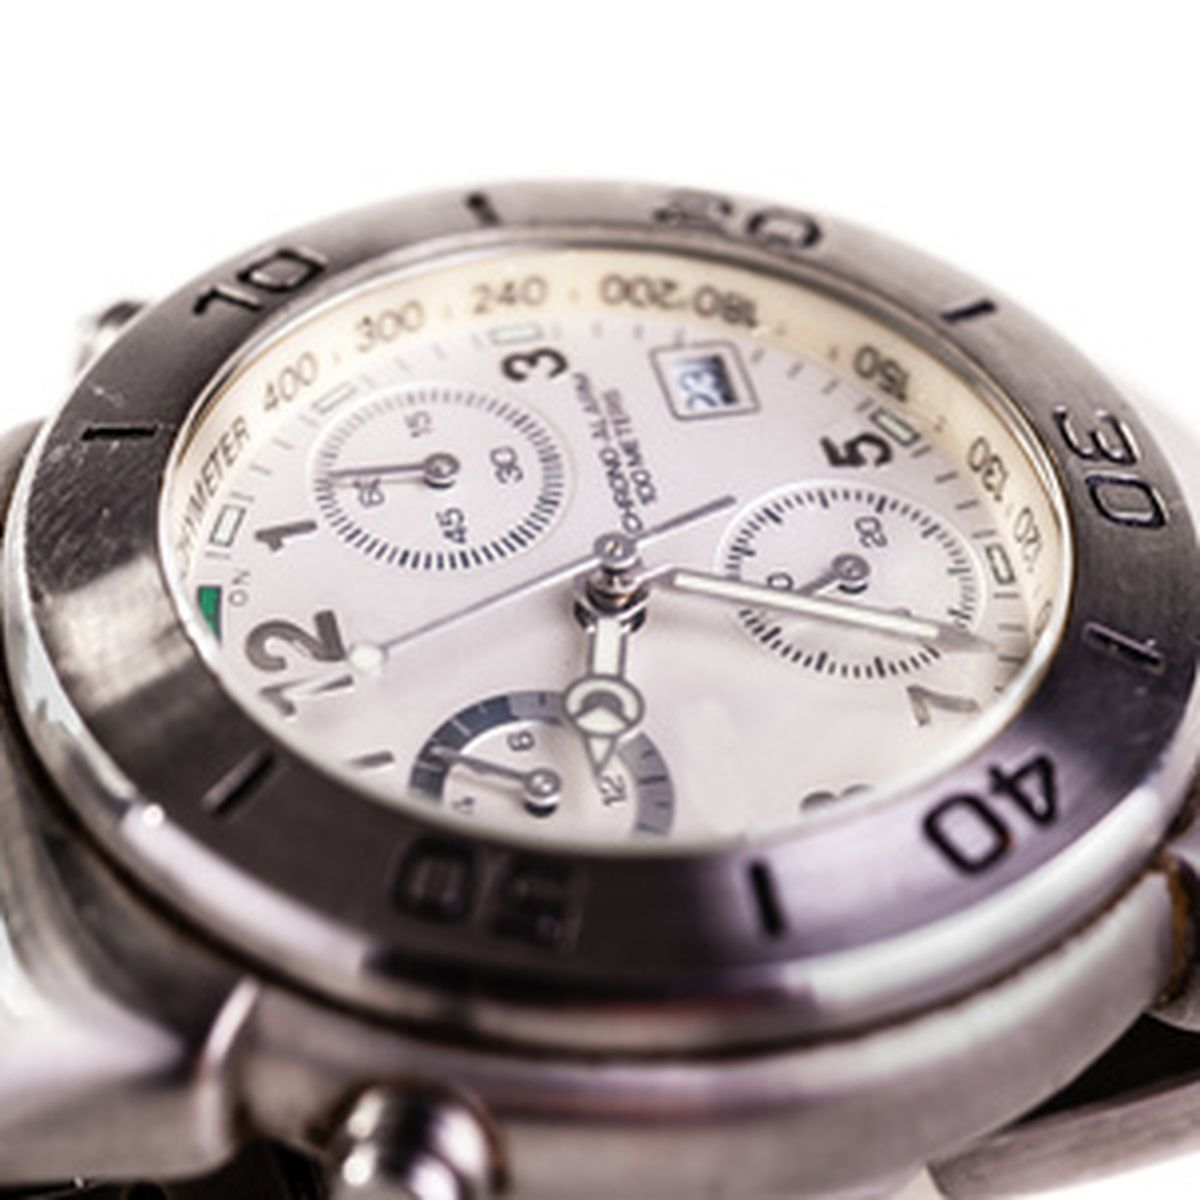 Why own a Swiss Army Watch?